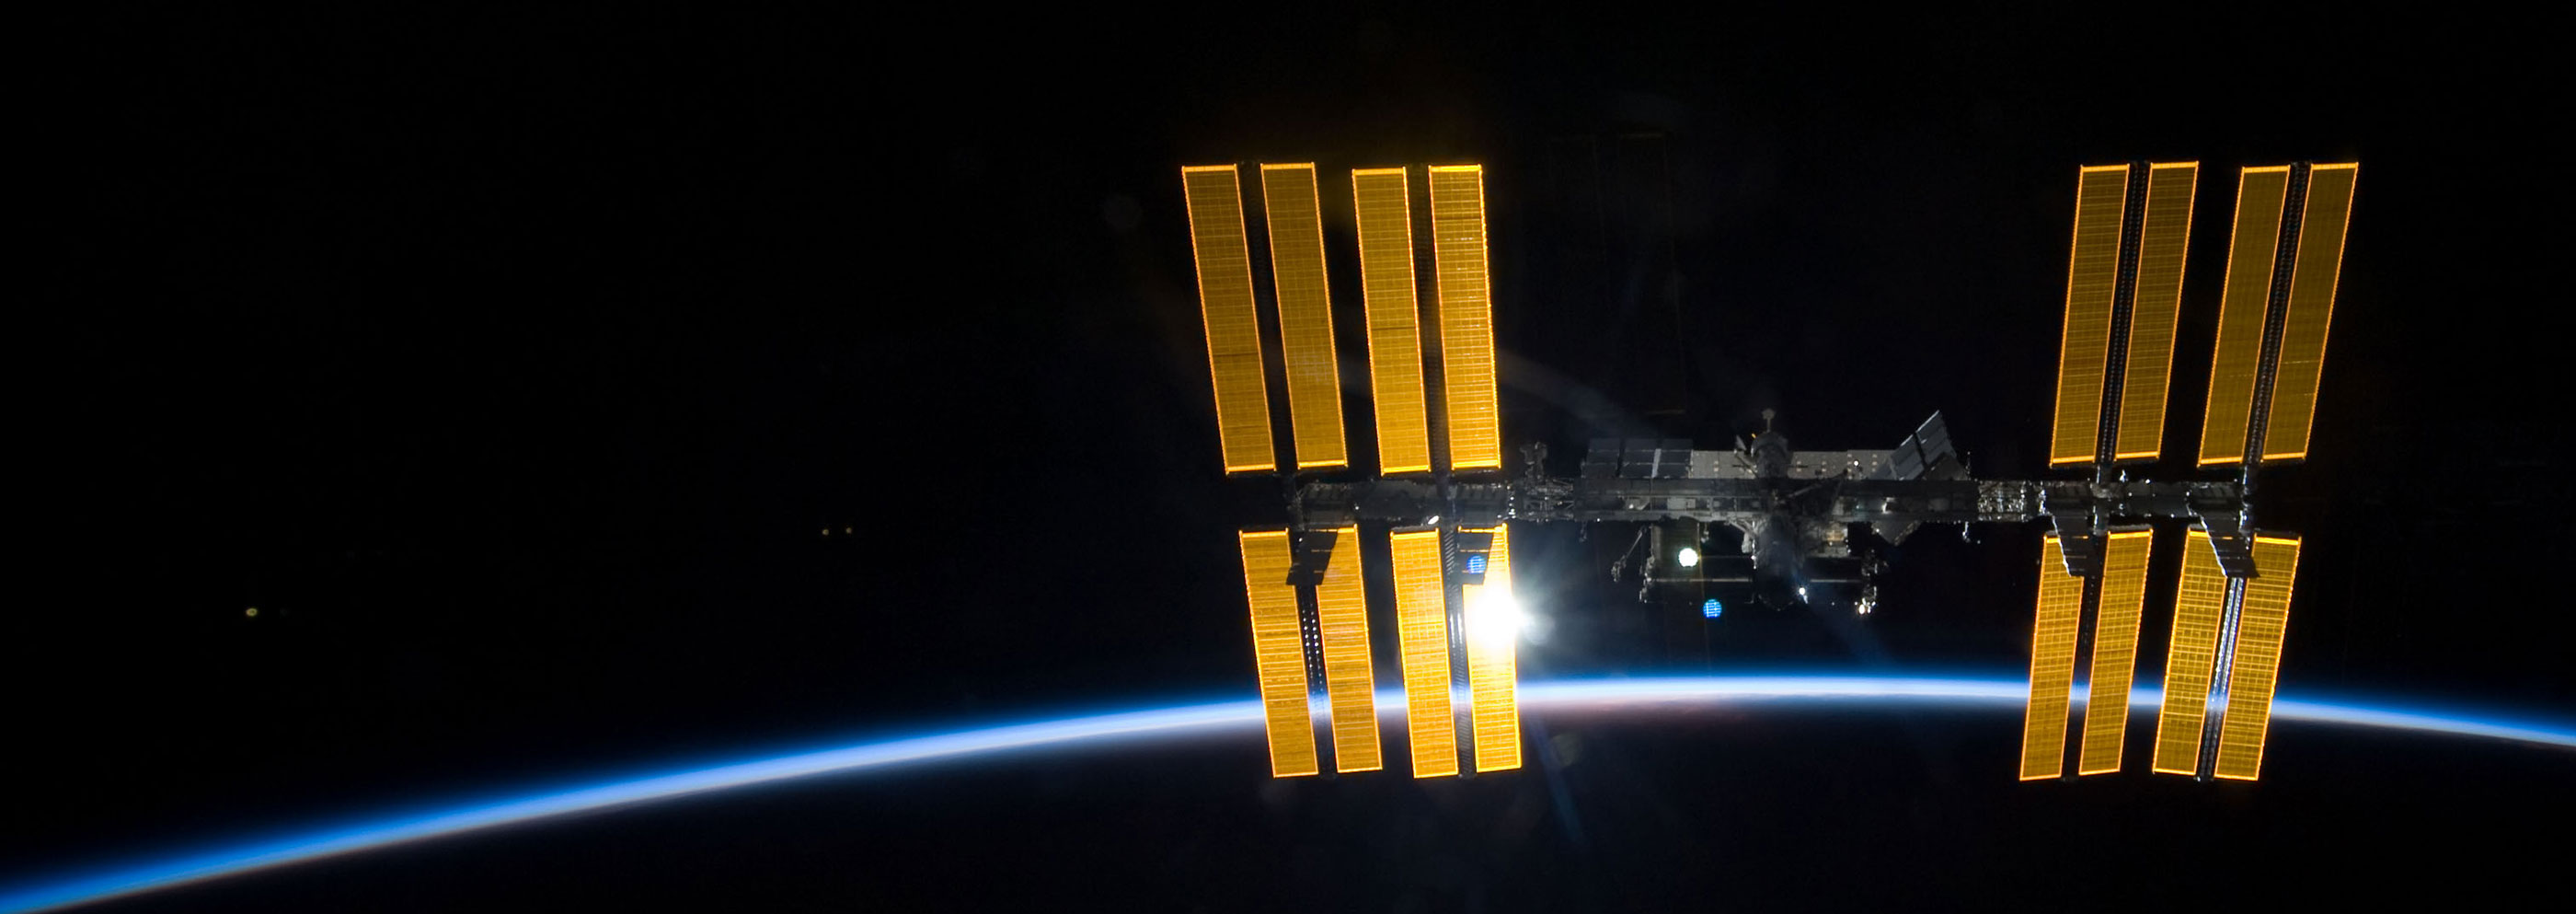 iss illumnated by sun over earth horizon banner